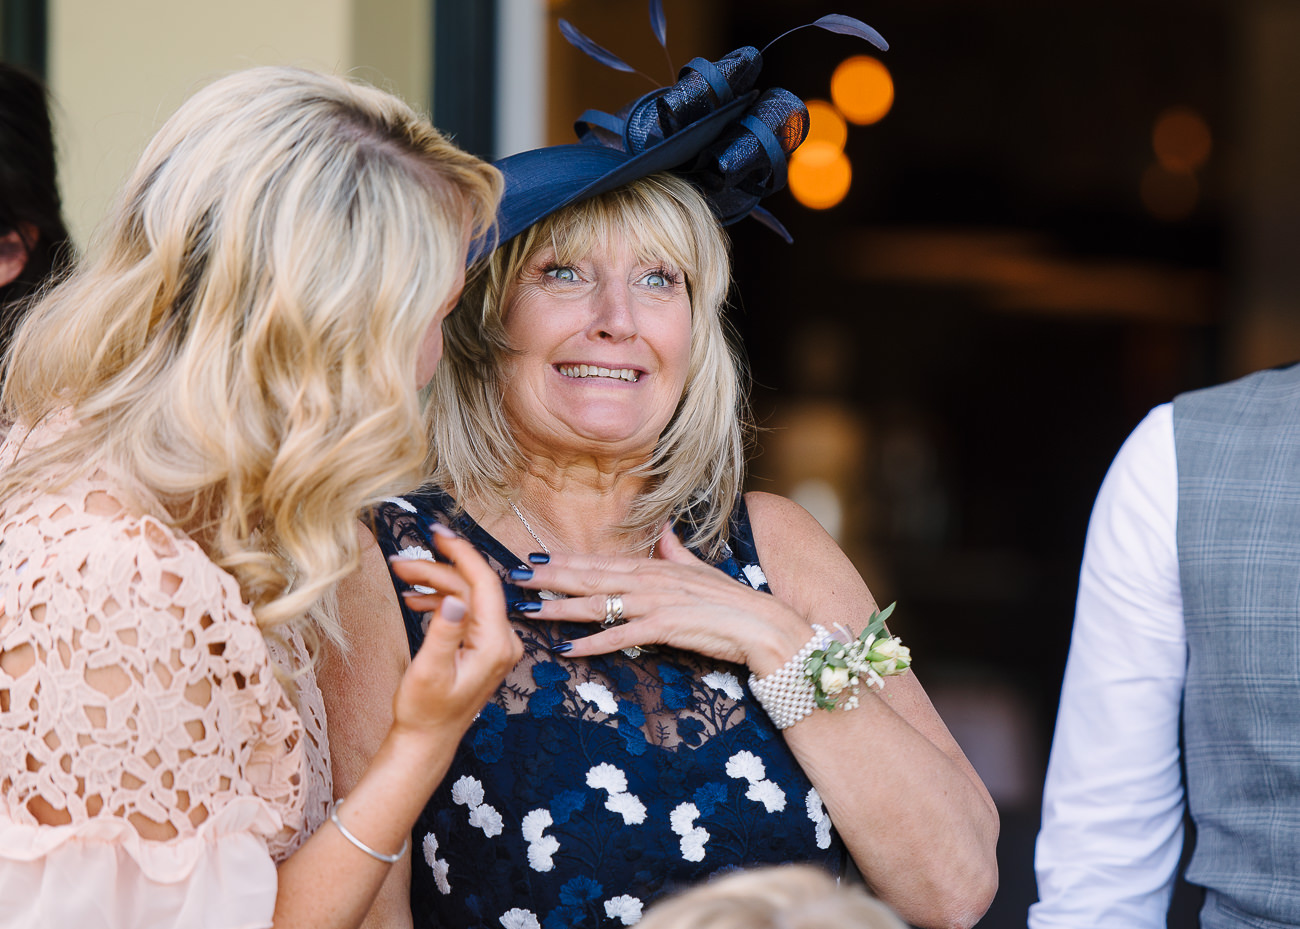 Mother of the groom pulling a face after a guest whispered something in her ear